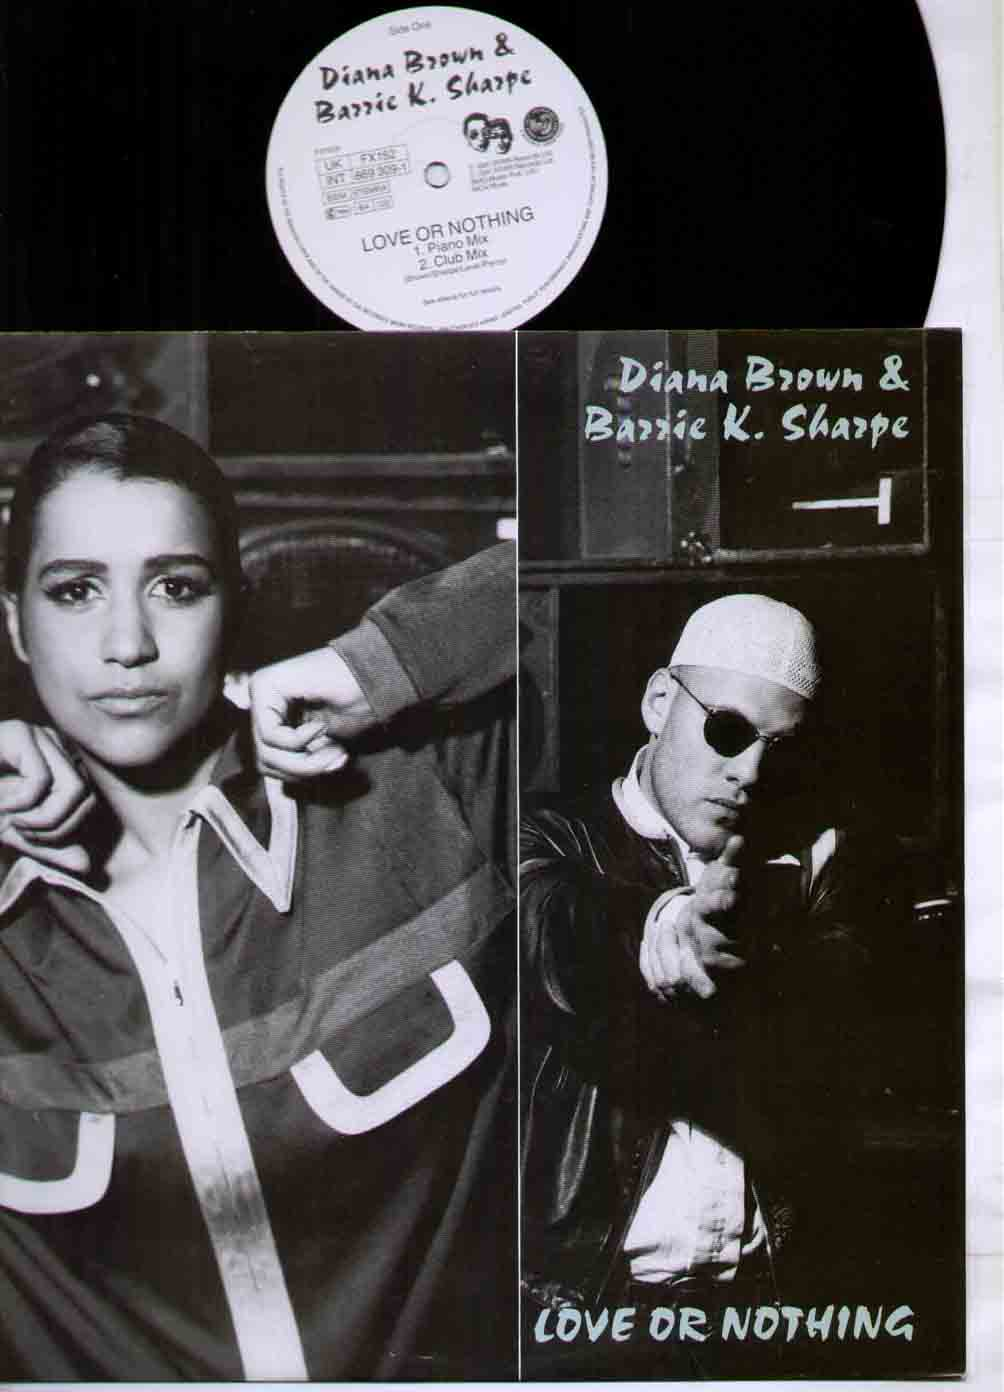 DIANA BROWN AND BARRIE K SHARPE - LOVE OR NOTHING - Maxi 45T